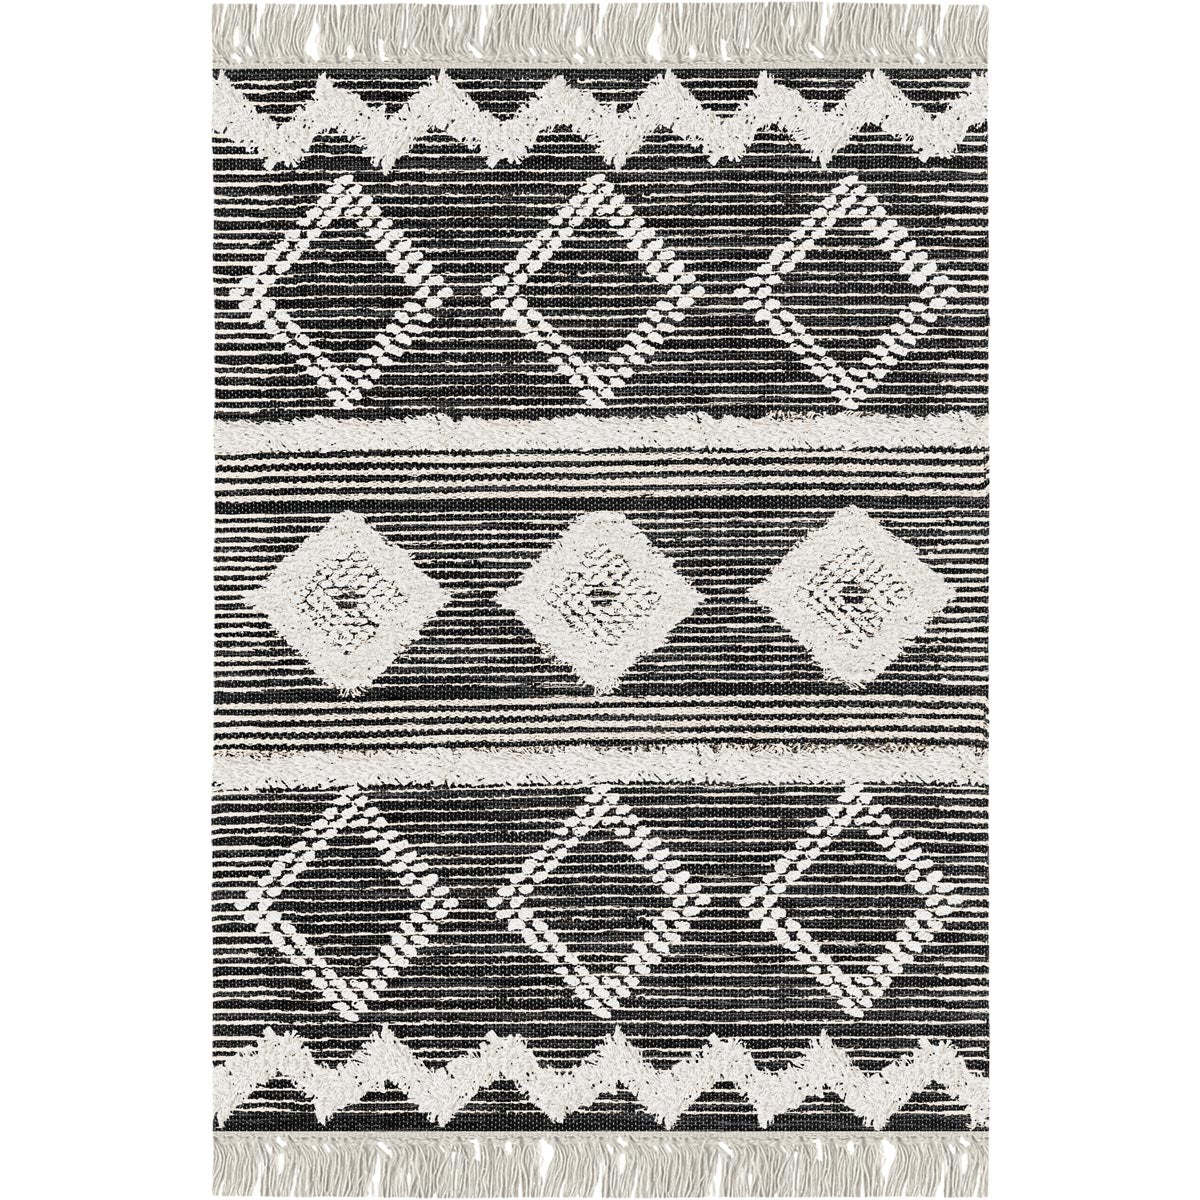 Tangier Rug 12 Black/White 1